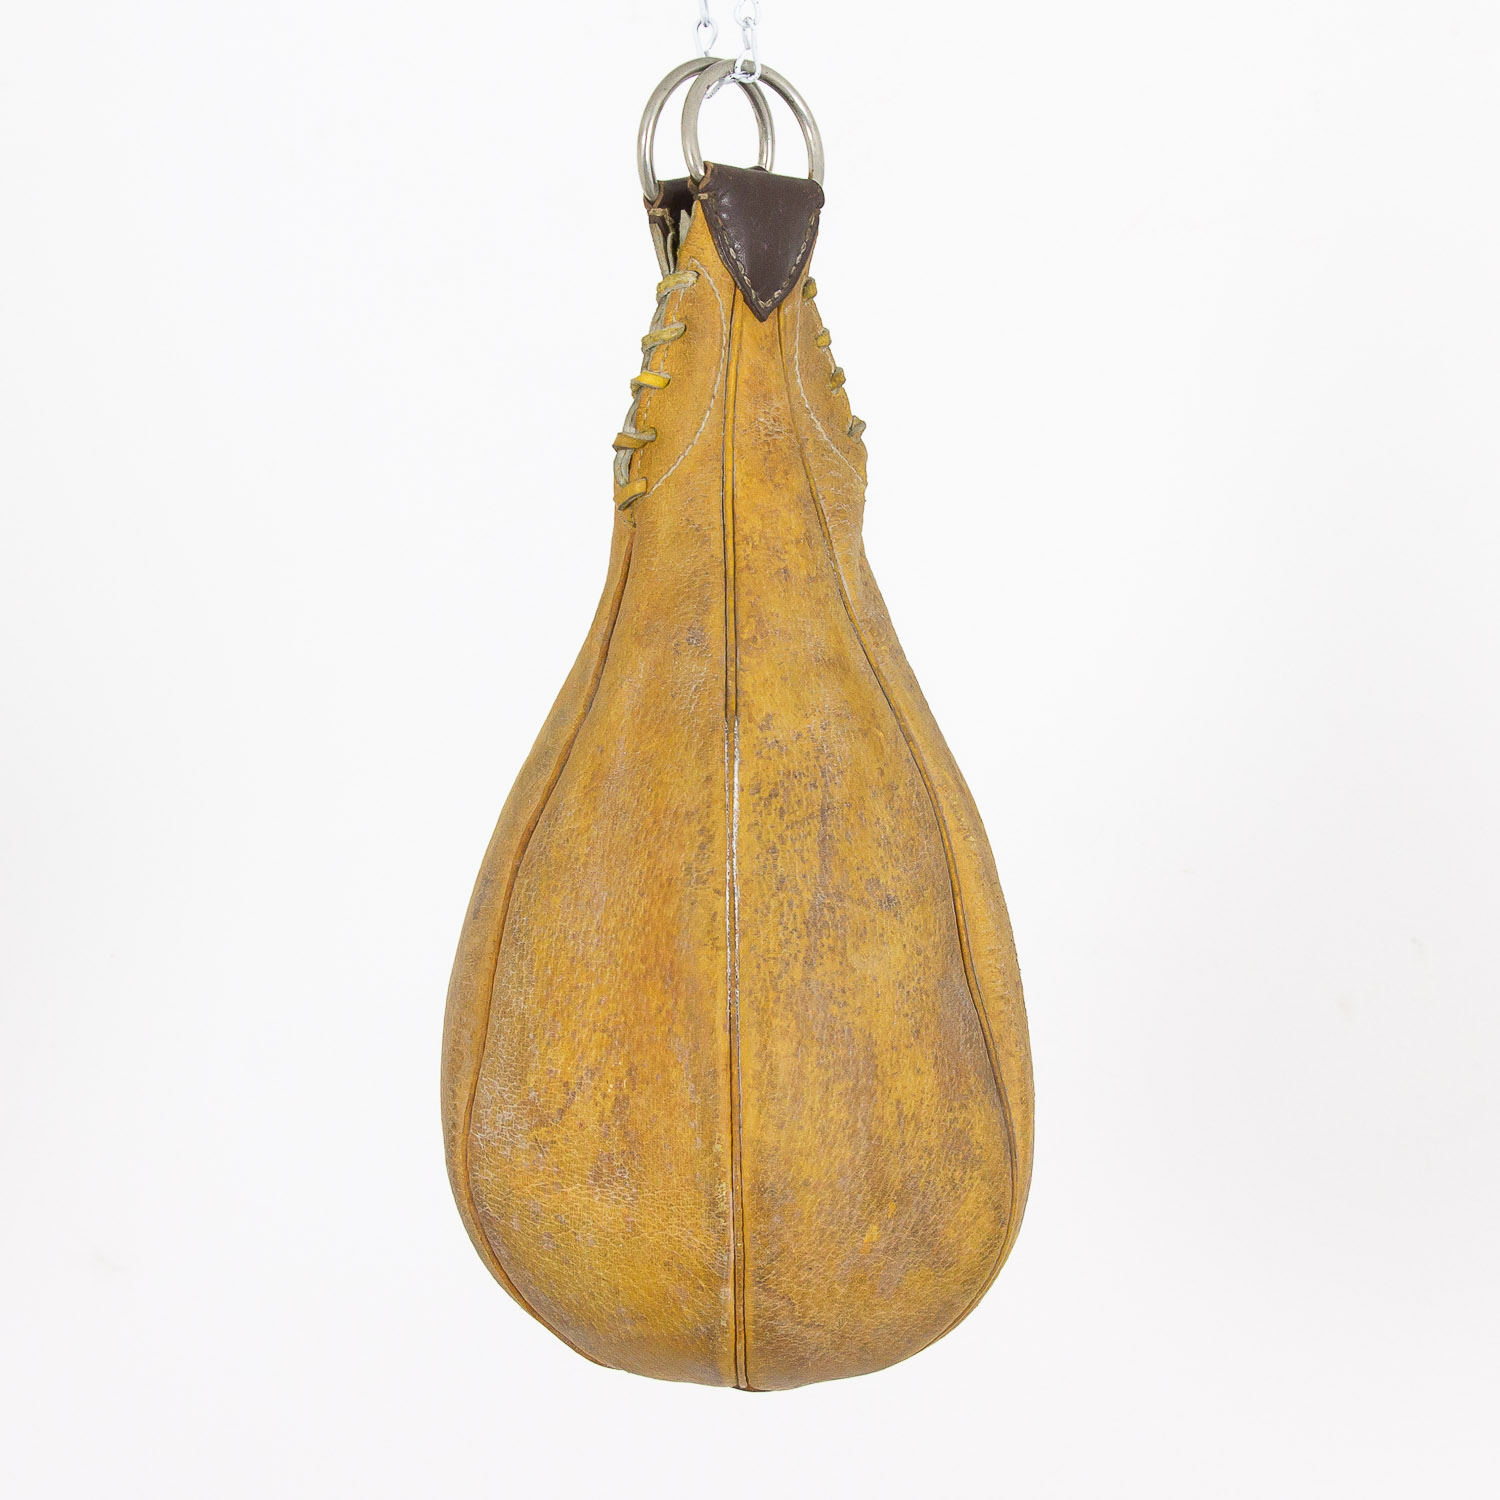 Vintage leather punching bag 'speed bag'